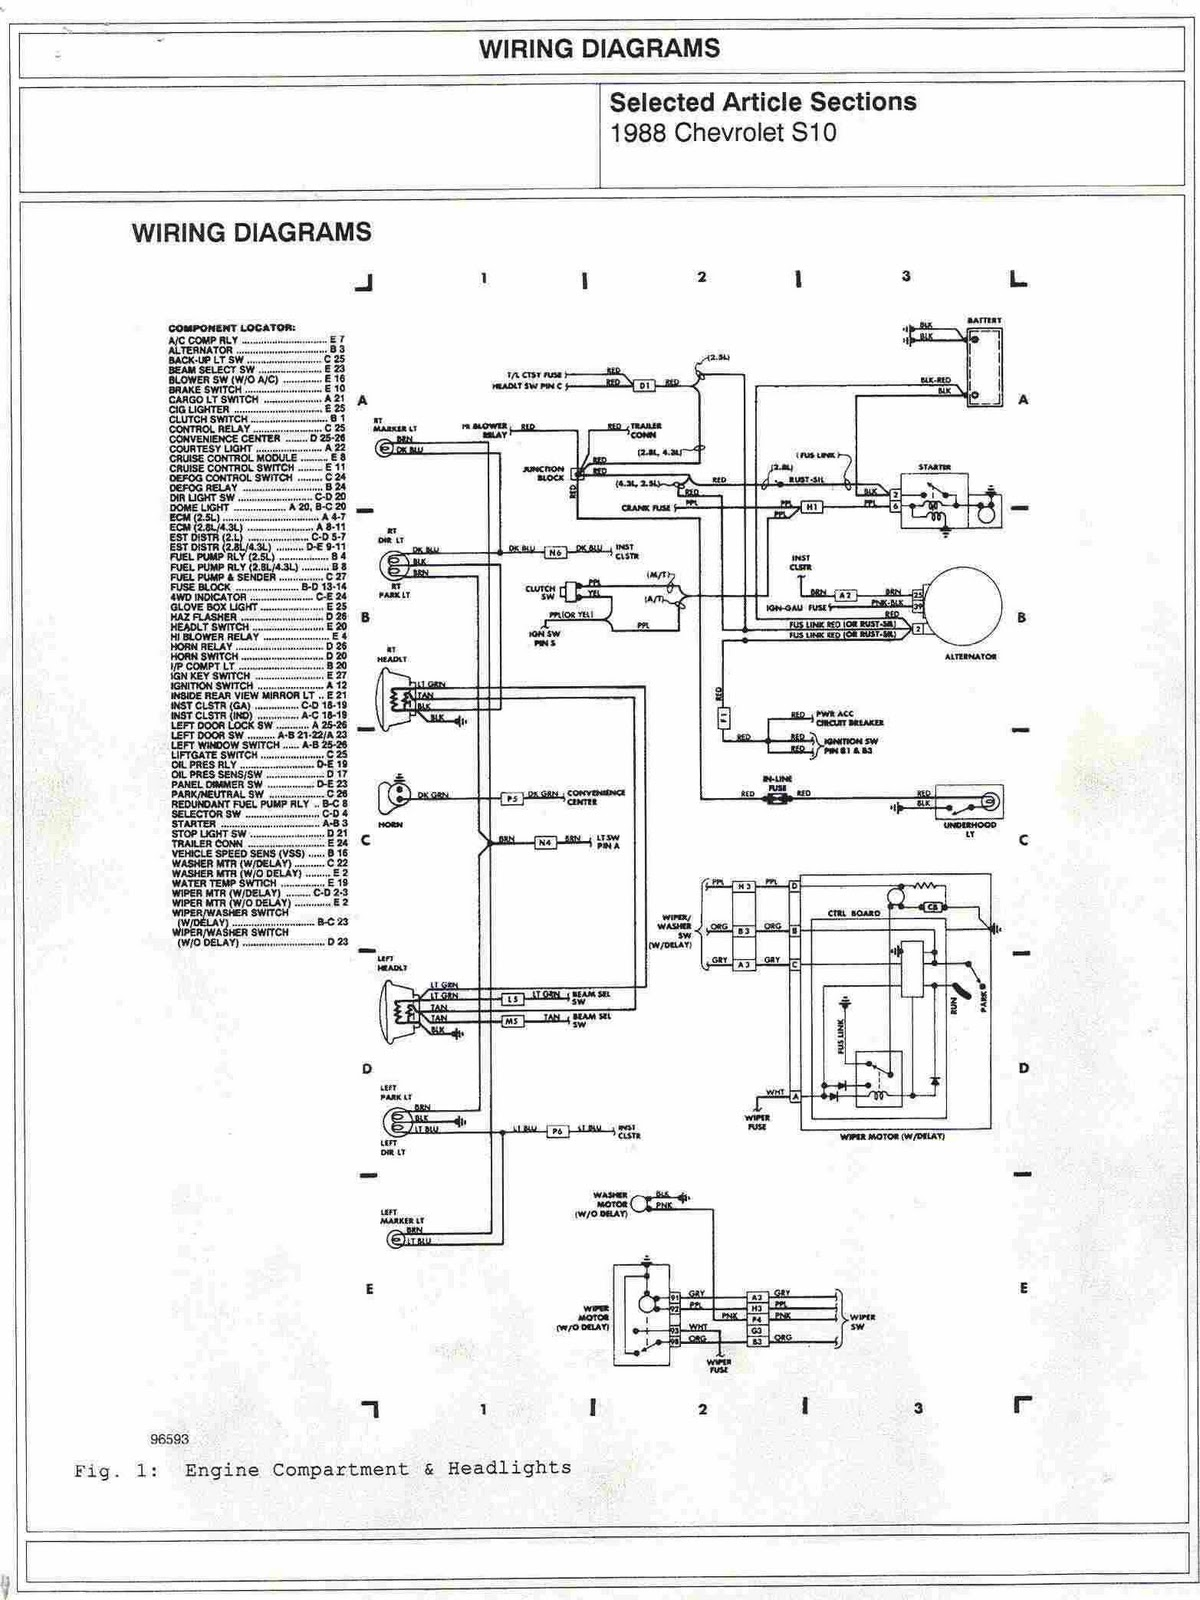 1988+Chevrolet+S10+Engine+Compartment+and+Headlights+Wiring+Diagrams 1988 chevrolet s10 engine compartment and headlights wiring 1953 chevy bel air wiring diagram at suagrazia.org